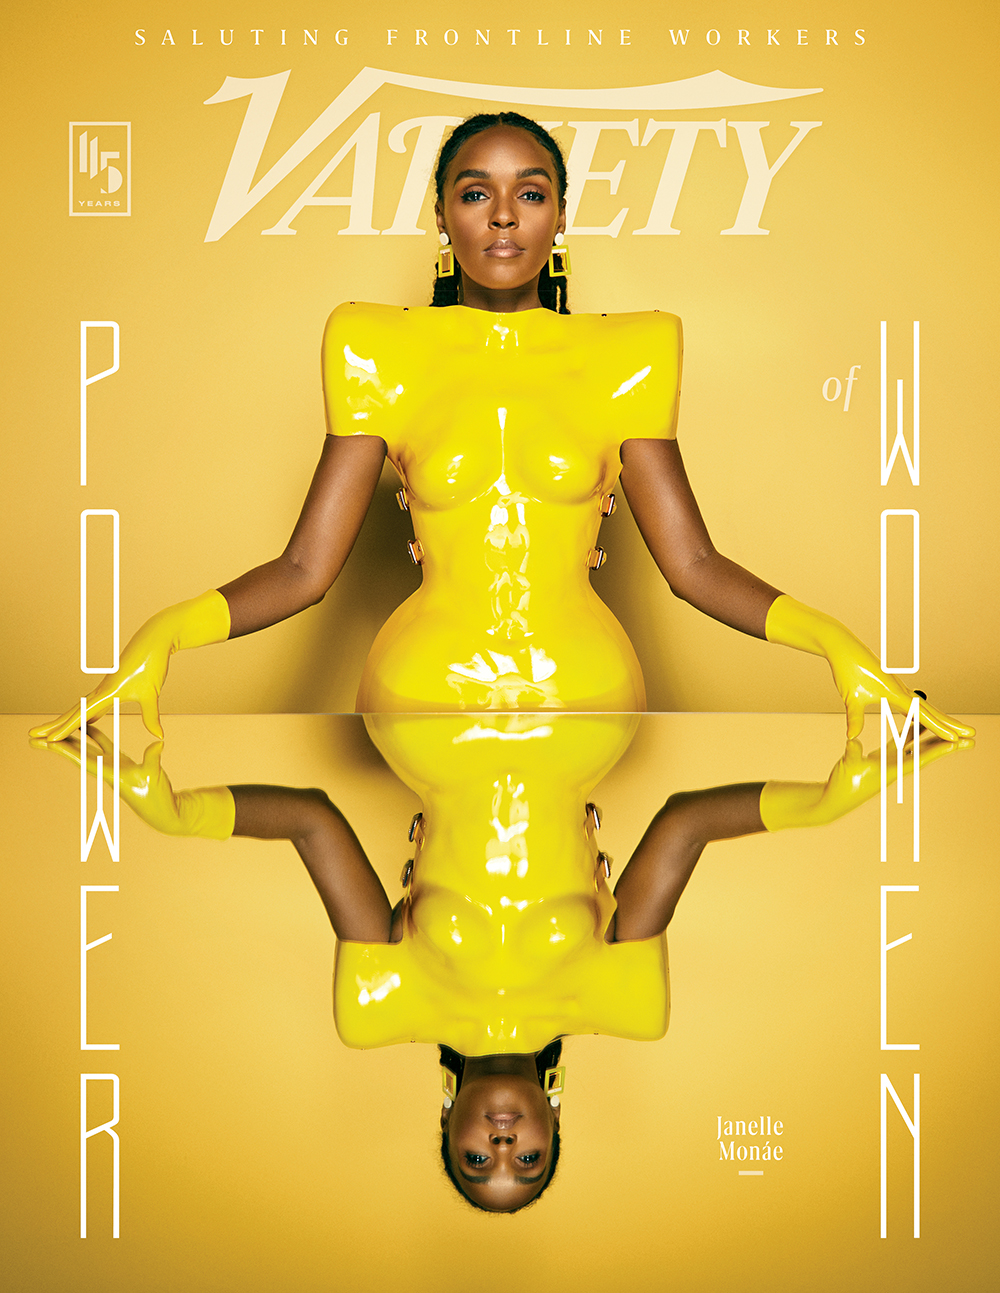 Variety: Janelle Monáe – The Interracial Queer Relationship in 'Homecoming' Is 'The Representation We Need' Now